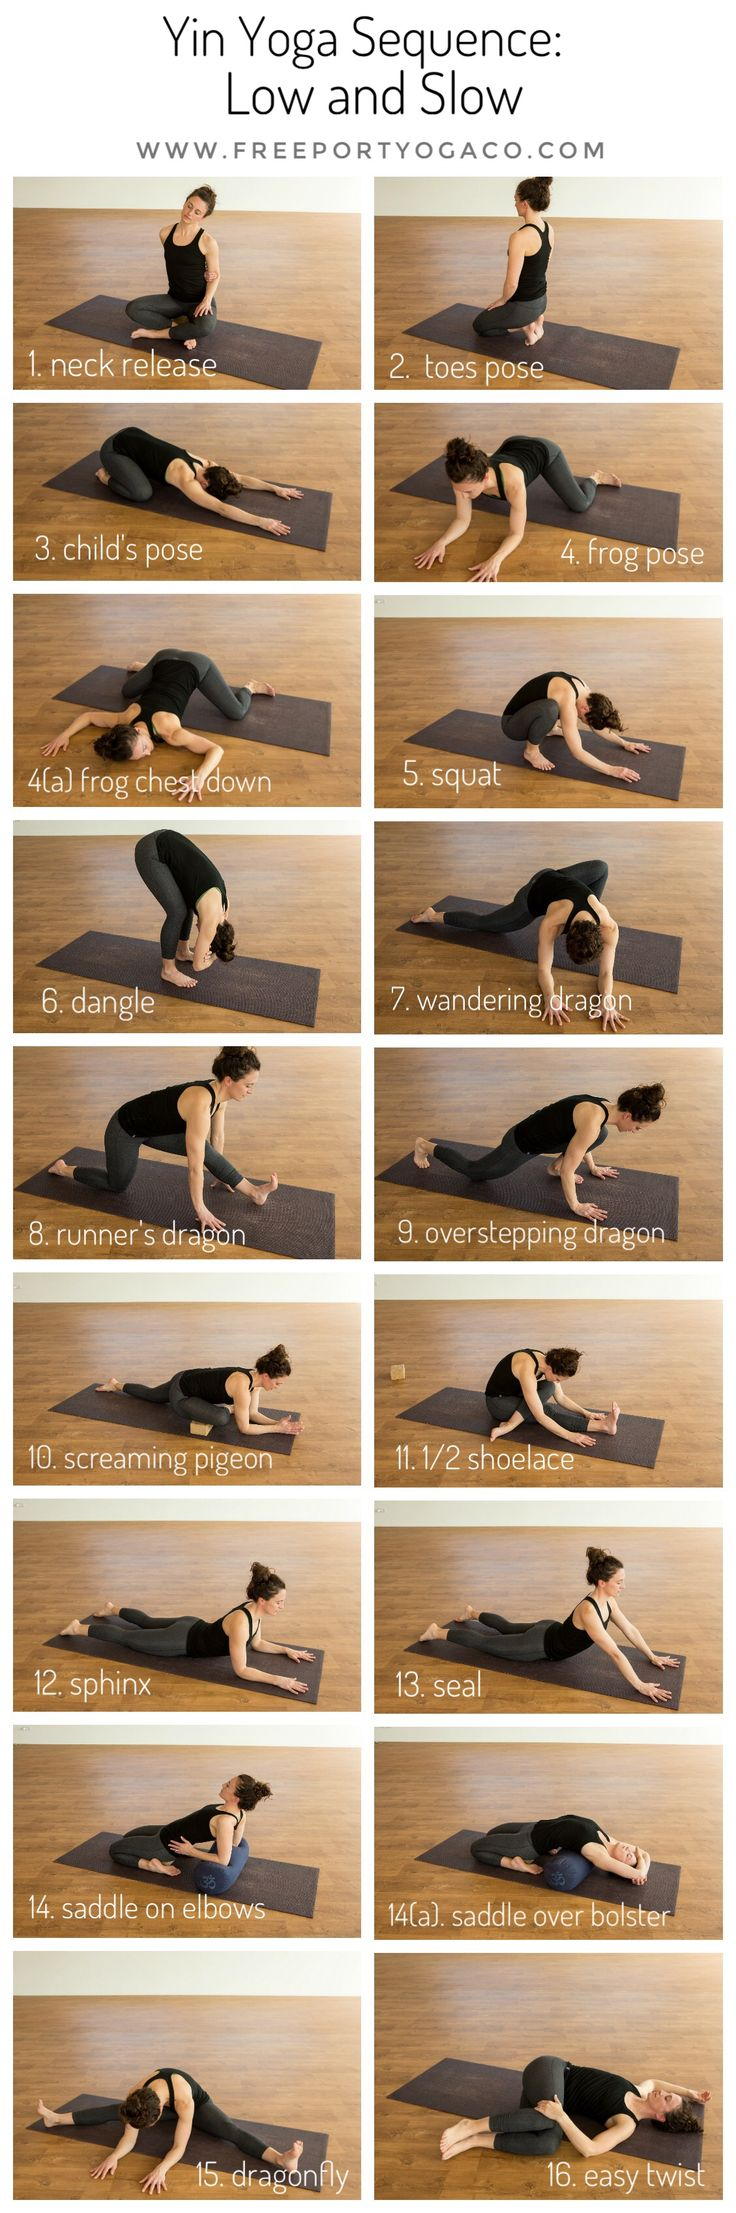 "This month's Yin Yoga Sequence is aptly titled ""Low and Slow"", inviting an earthy, grounded energy, and physically, targeting the lower body, including the feet and ankles.  As always, I take into consideration my runners and athletes, who are currently coming off race season, or getting ready for the last big races, and this sequence is perfect for either phase of training.   #yinyogasequence #yinyoga #yogaforrunners #yogaforathletes"